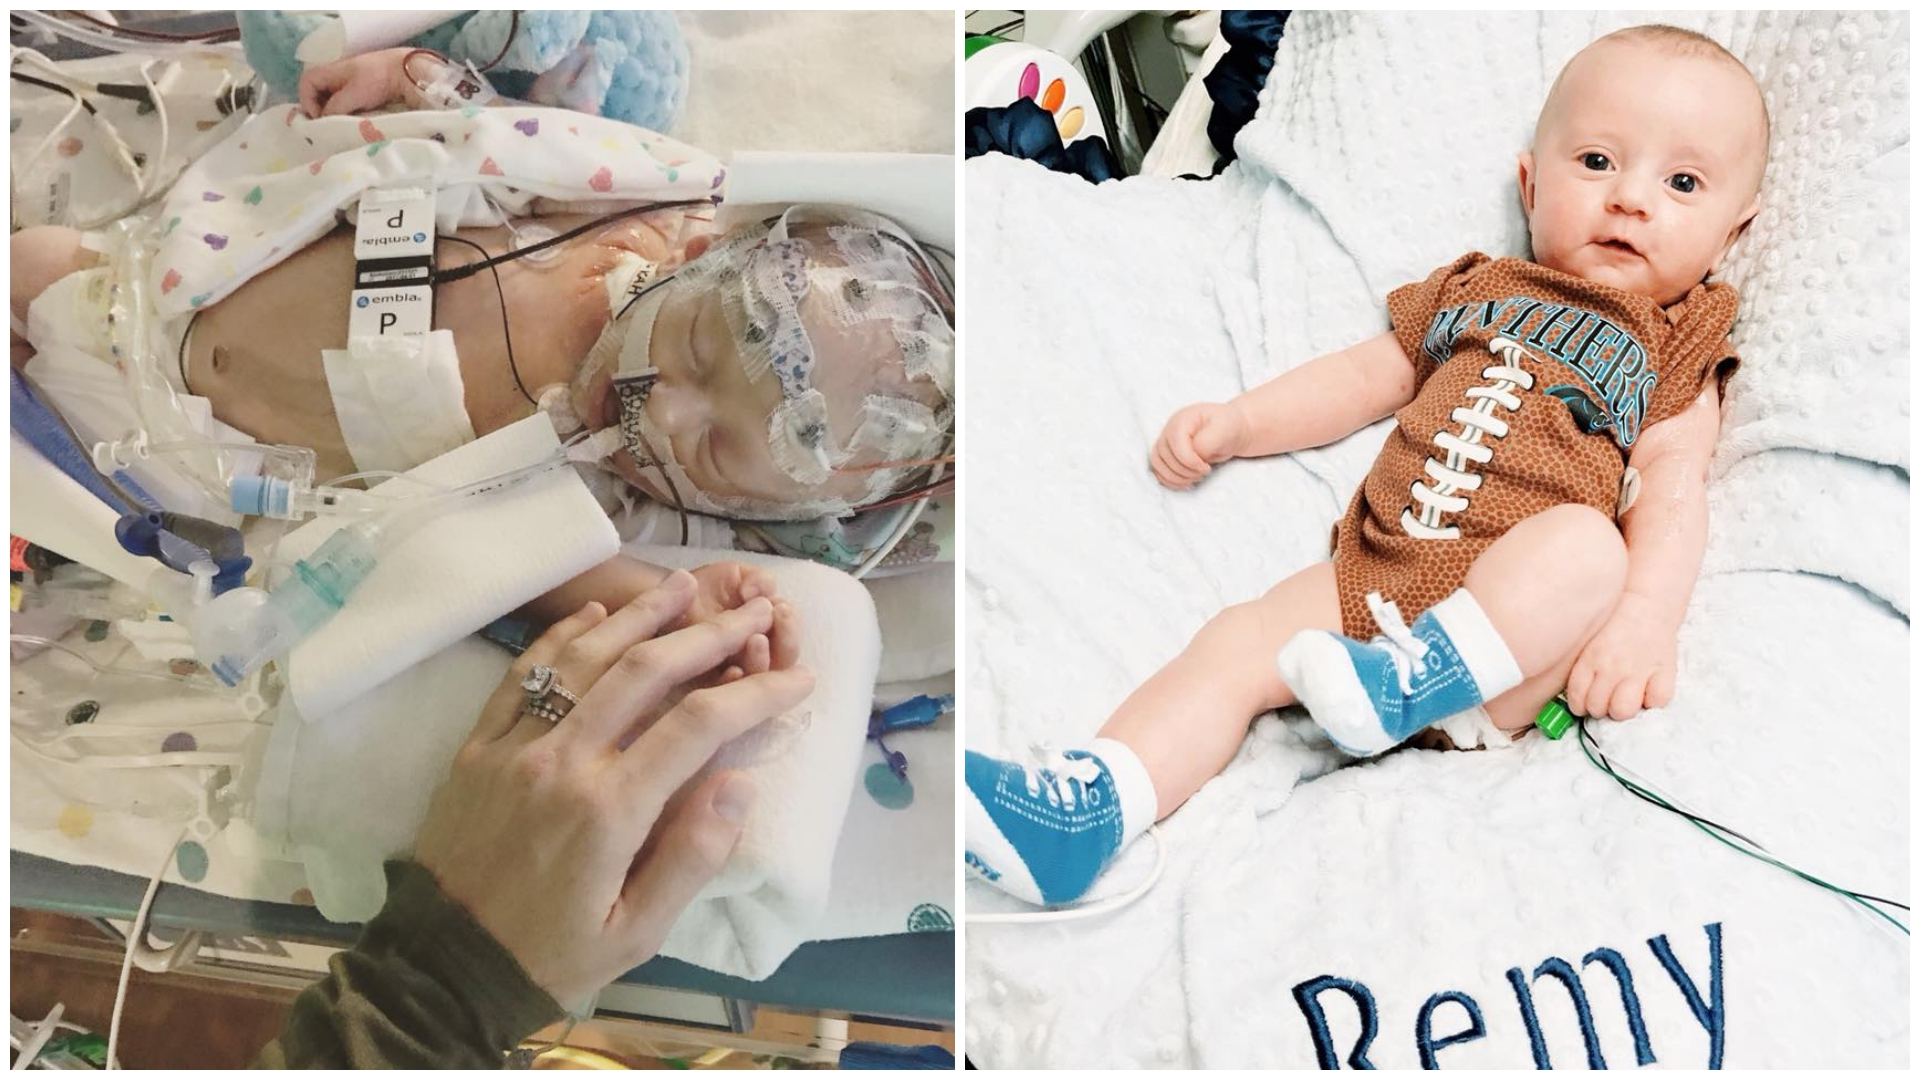 With a family that's full of hope and a care team that's full of determination, Remy Bowes is beating the odds and growing stronger every day.